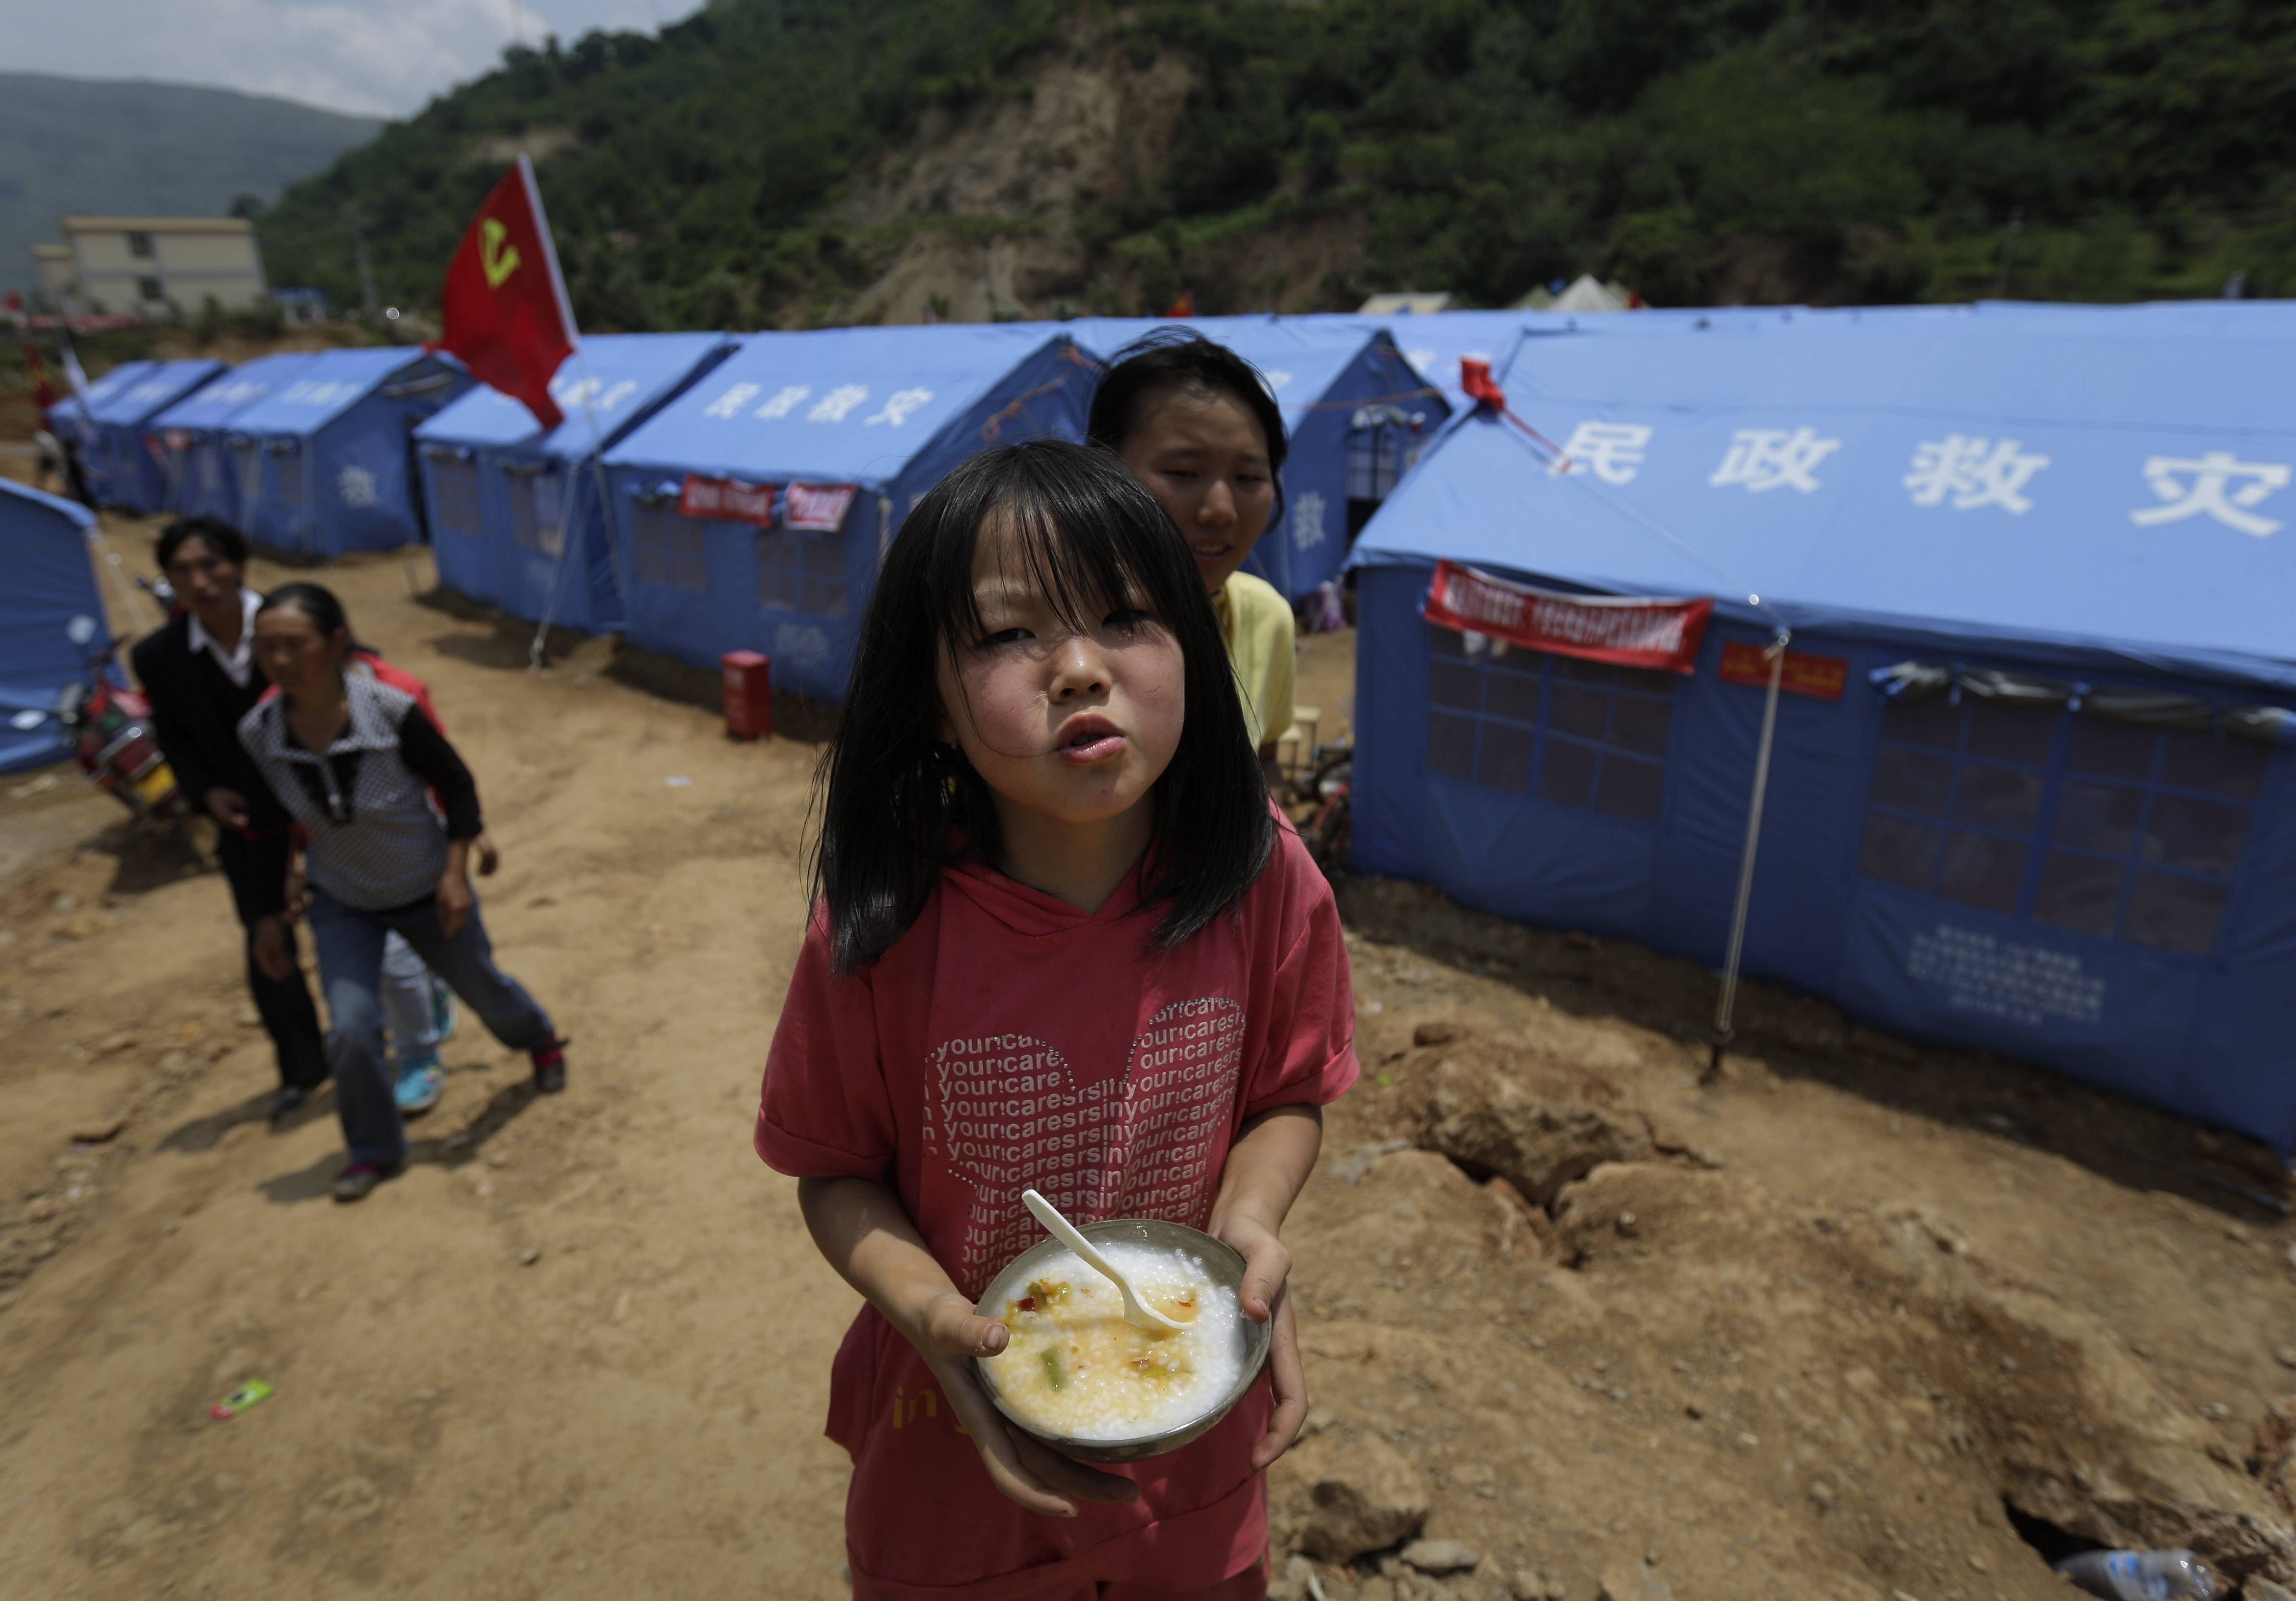 A child holds a bowl of porridge cooked by volunteers in front of temporary tents set up at the quake-hit area in the town of Longtoushan in Ludian county in southwest China's Yunnan Province Wednesday, Aug. 6, 2014. Some 10,000 troops and hundreds of volunteers have rushed to Ludian to clear roads and dig out survivors from the debris, but landslides and bouts of heavy rains have complicated the efforts. (